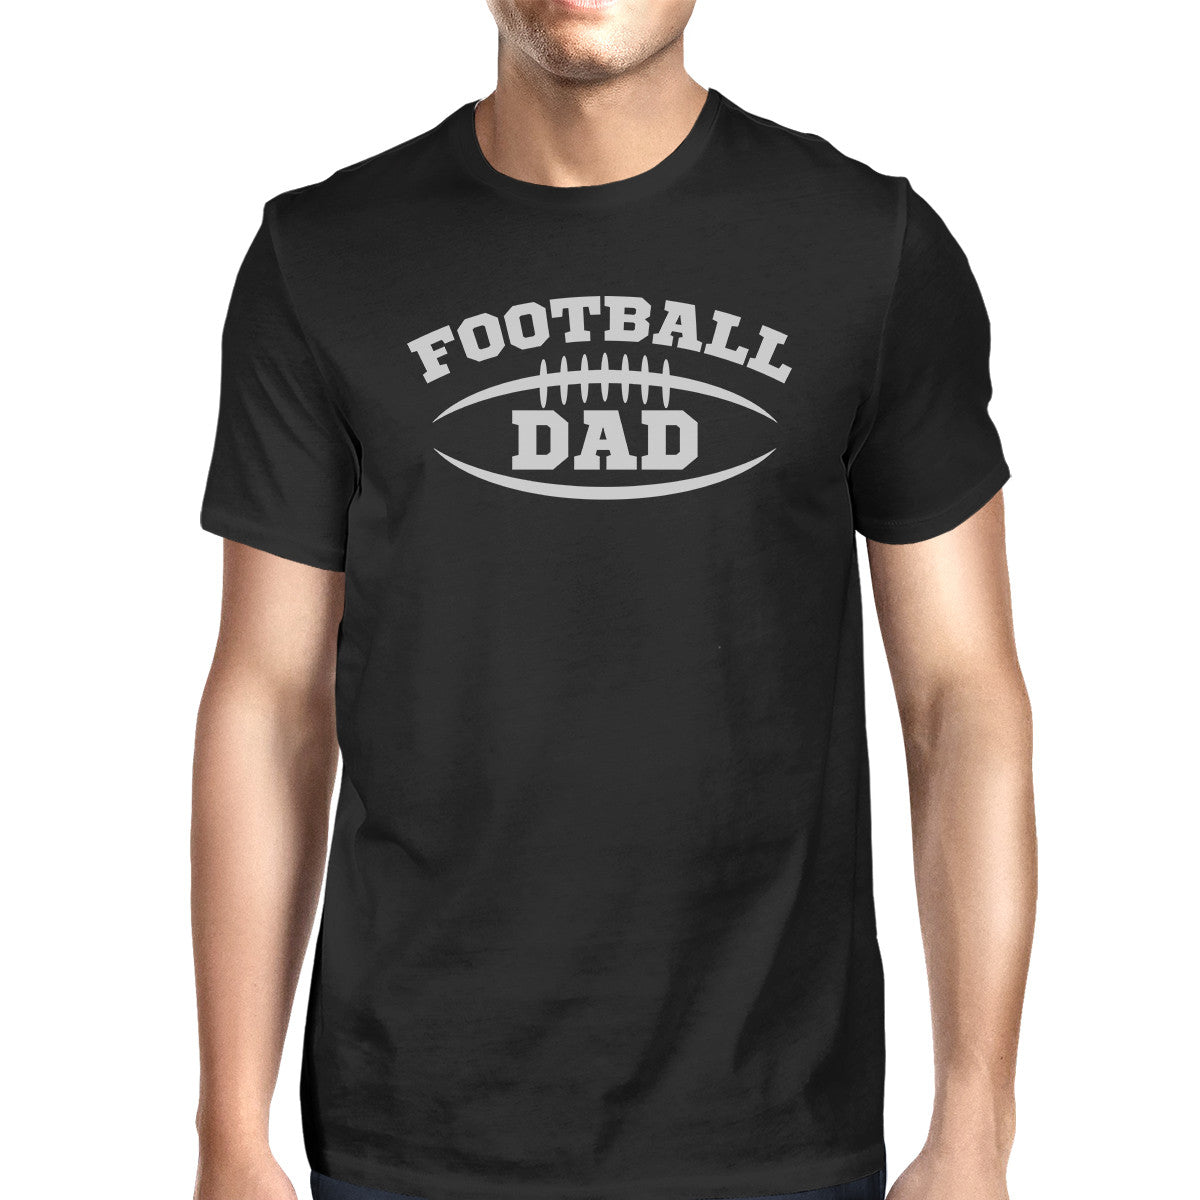 54a561c4d Football Dad Men's Black T-Shirt Fathers Day Gifts For Football Dad ...